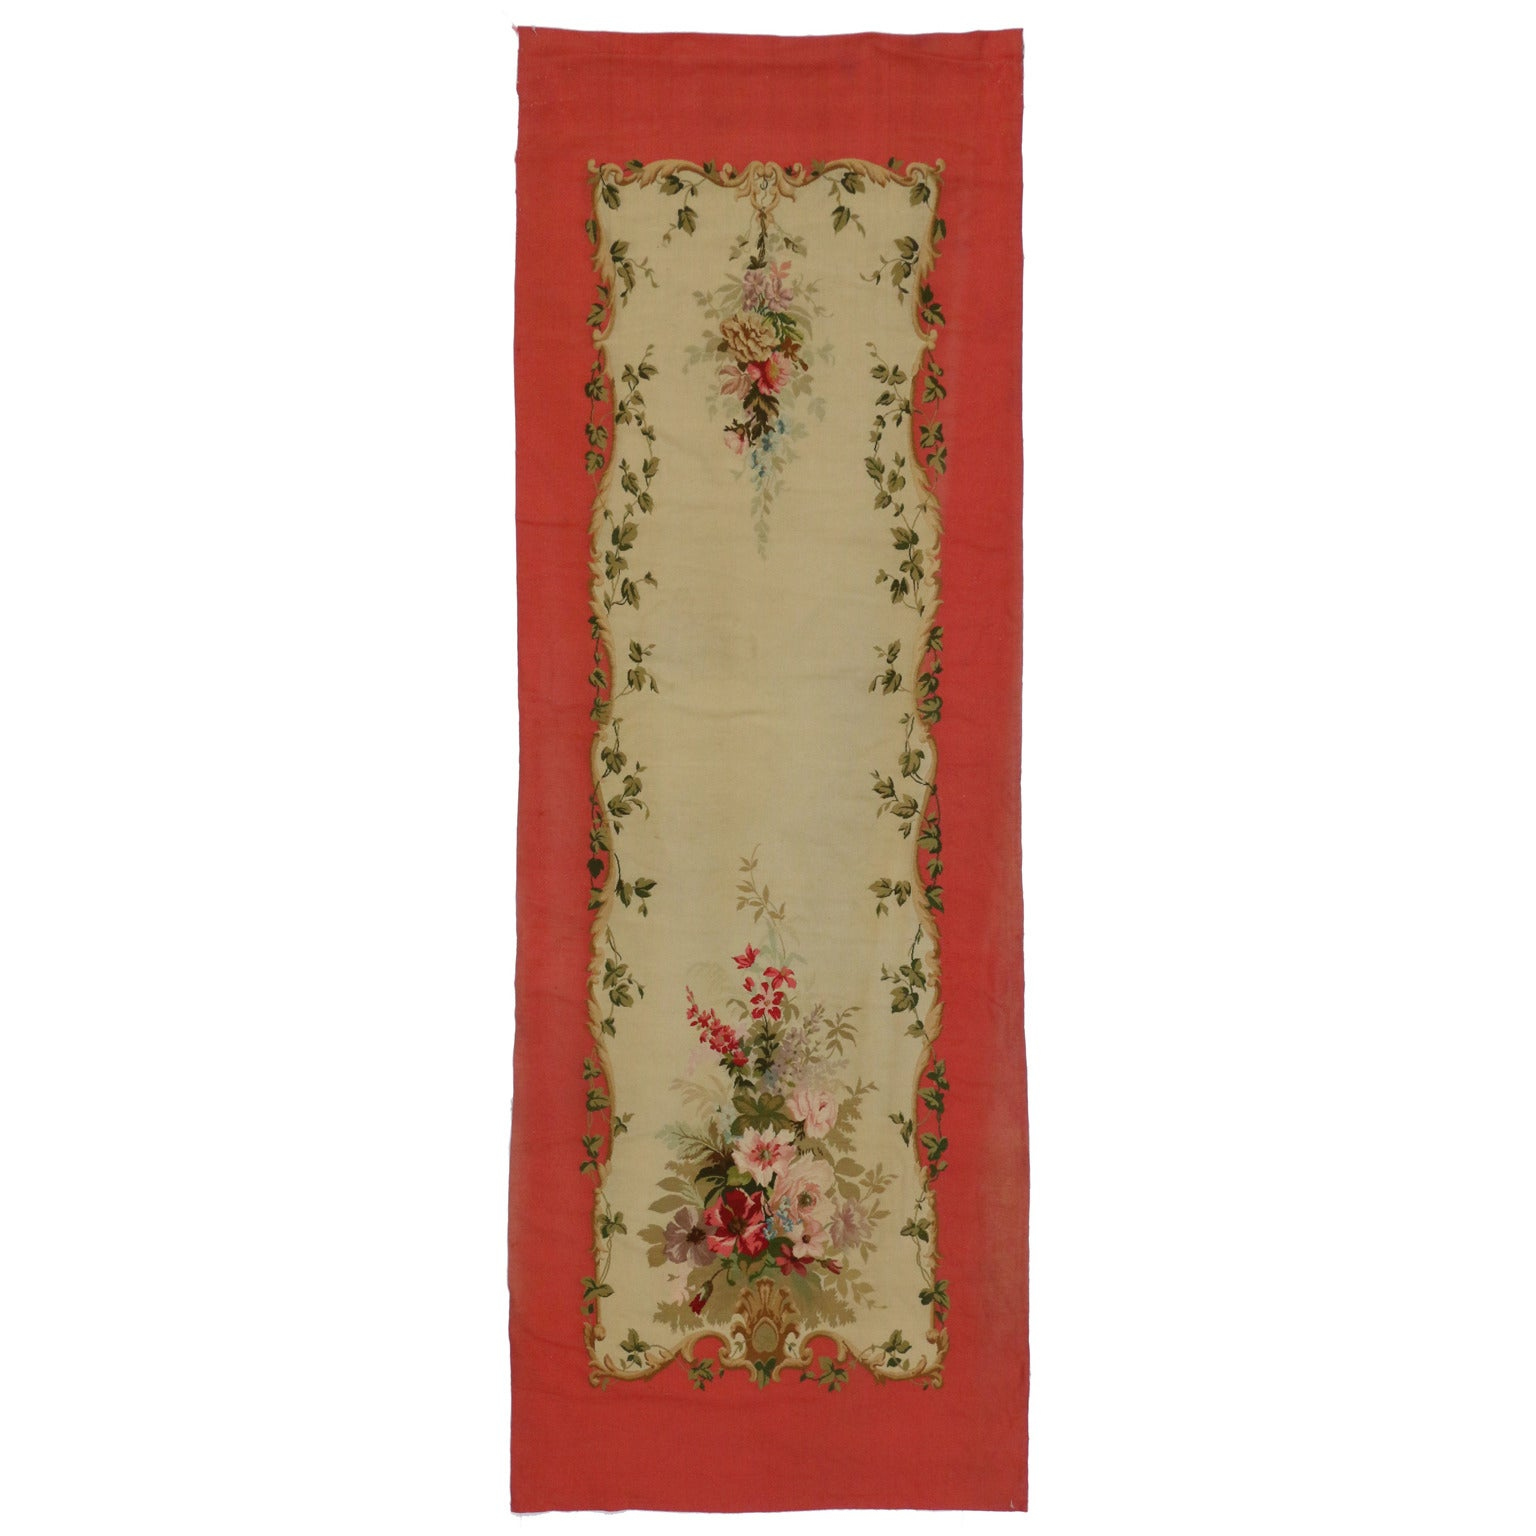 Antique French Aubusson Tapestry with Rococo Style, Savonnerie Wall Hanging